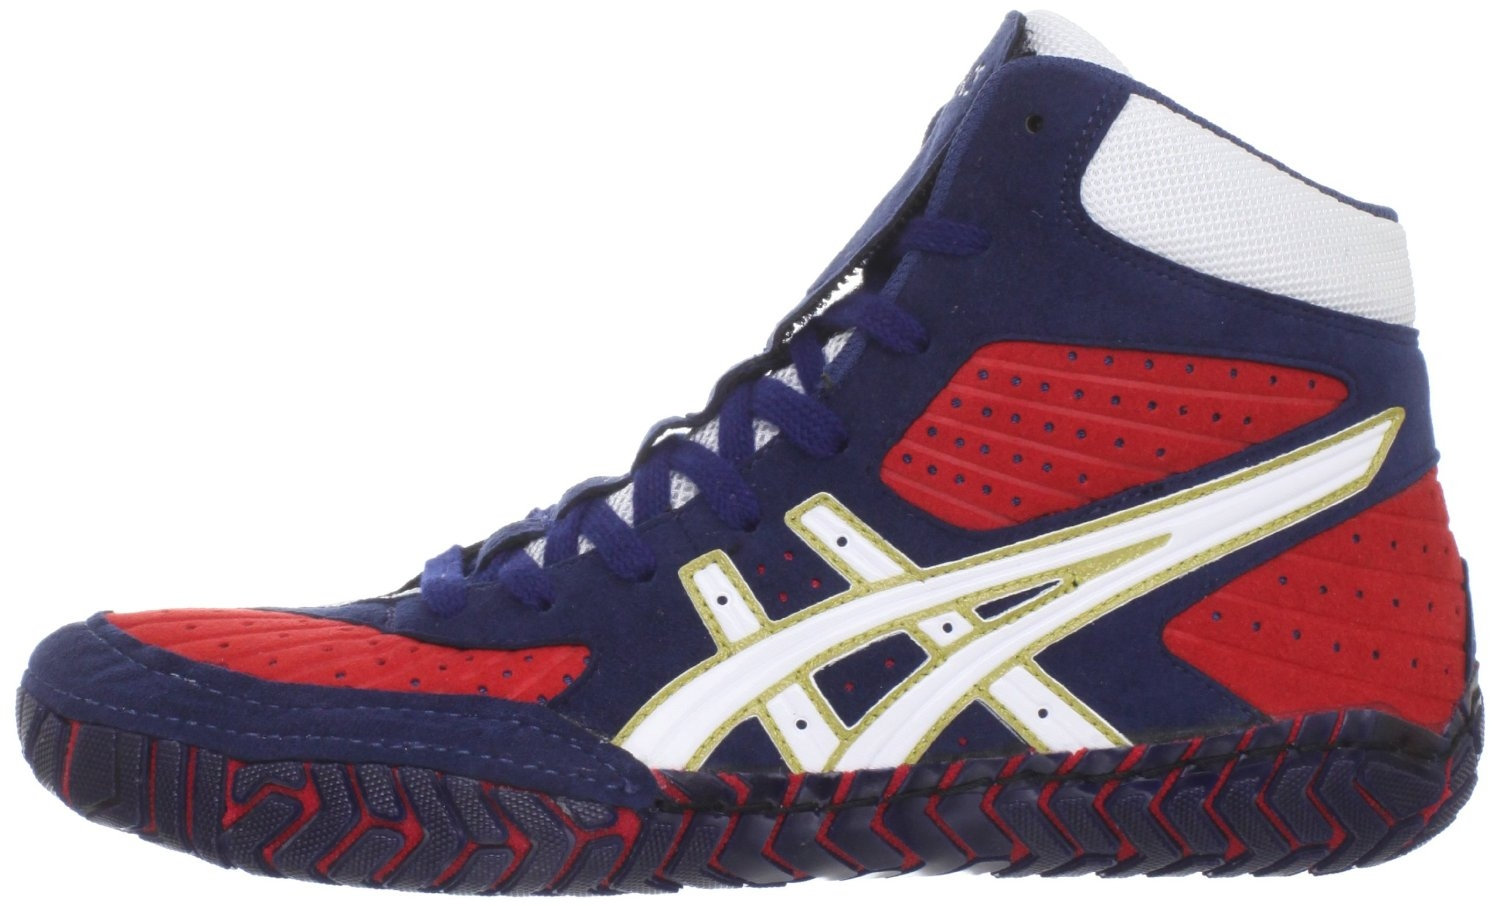 Black And Red Asics Wrestling Shoes Asics Agressor Wrestling Shoes